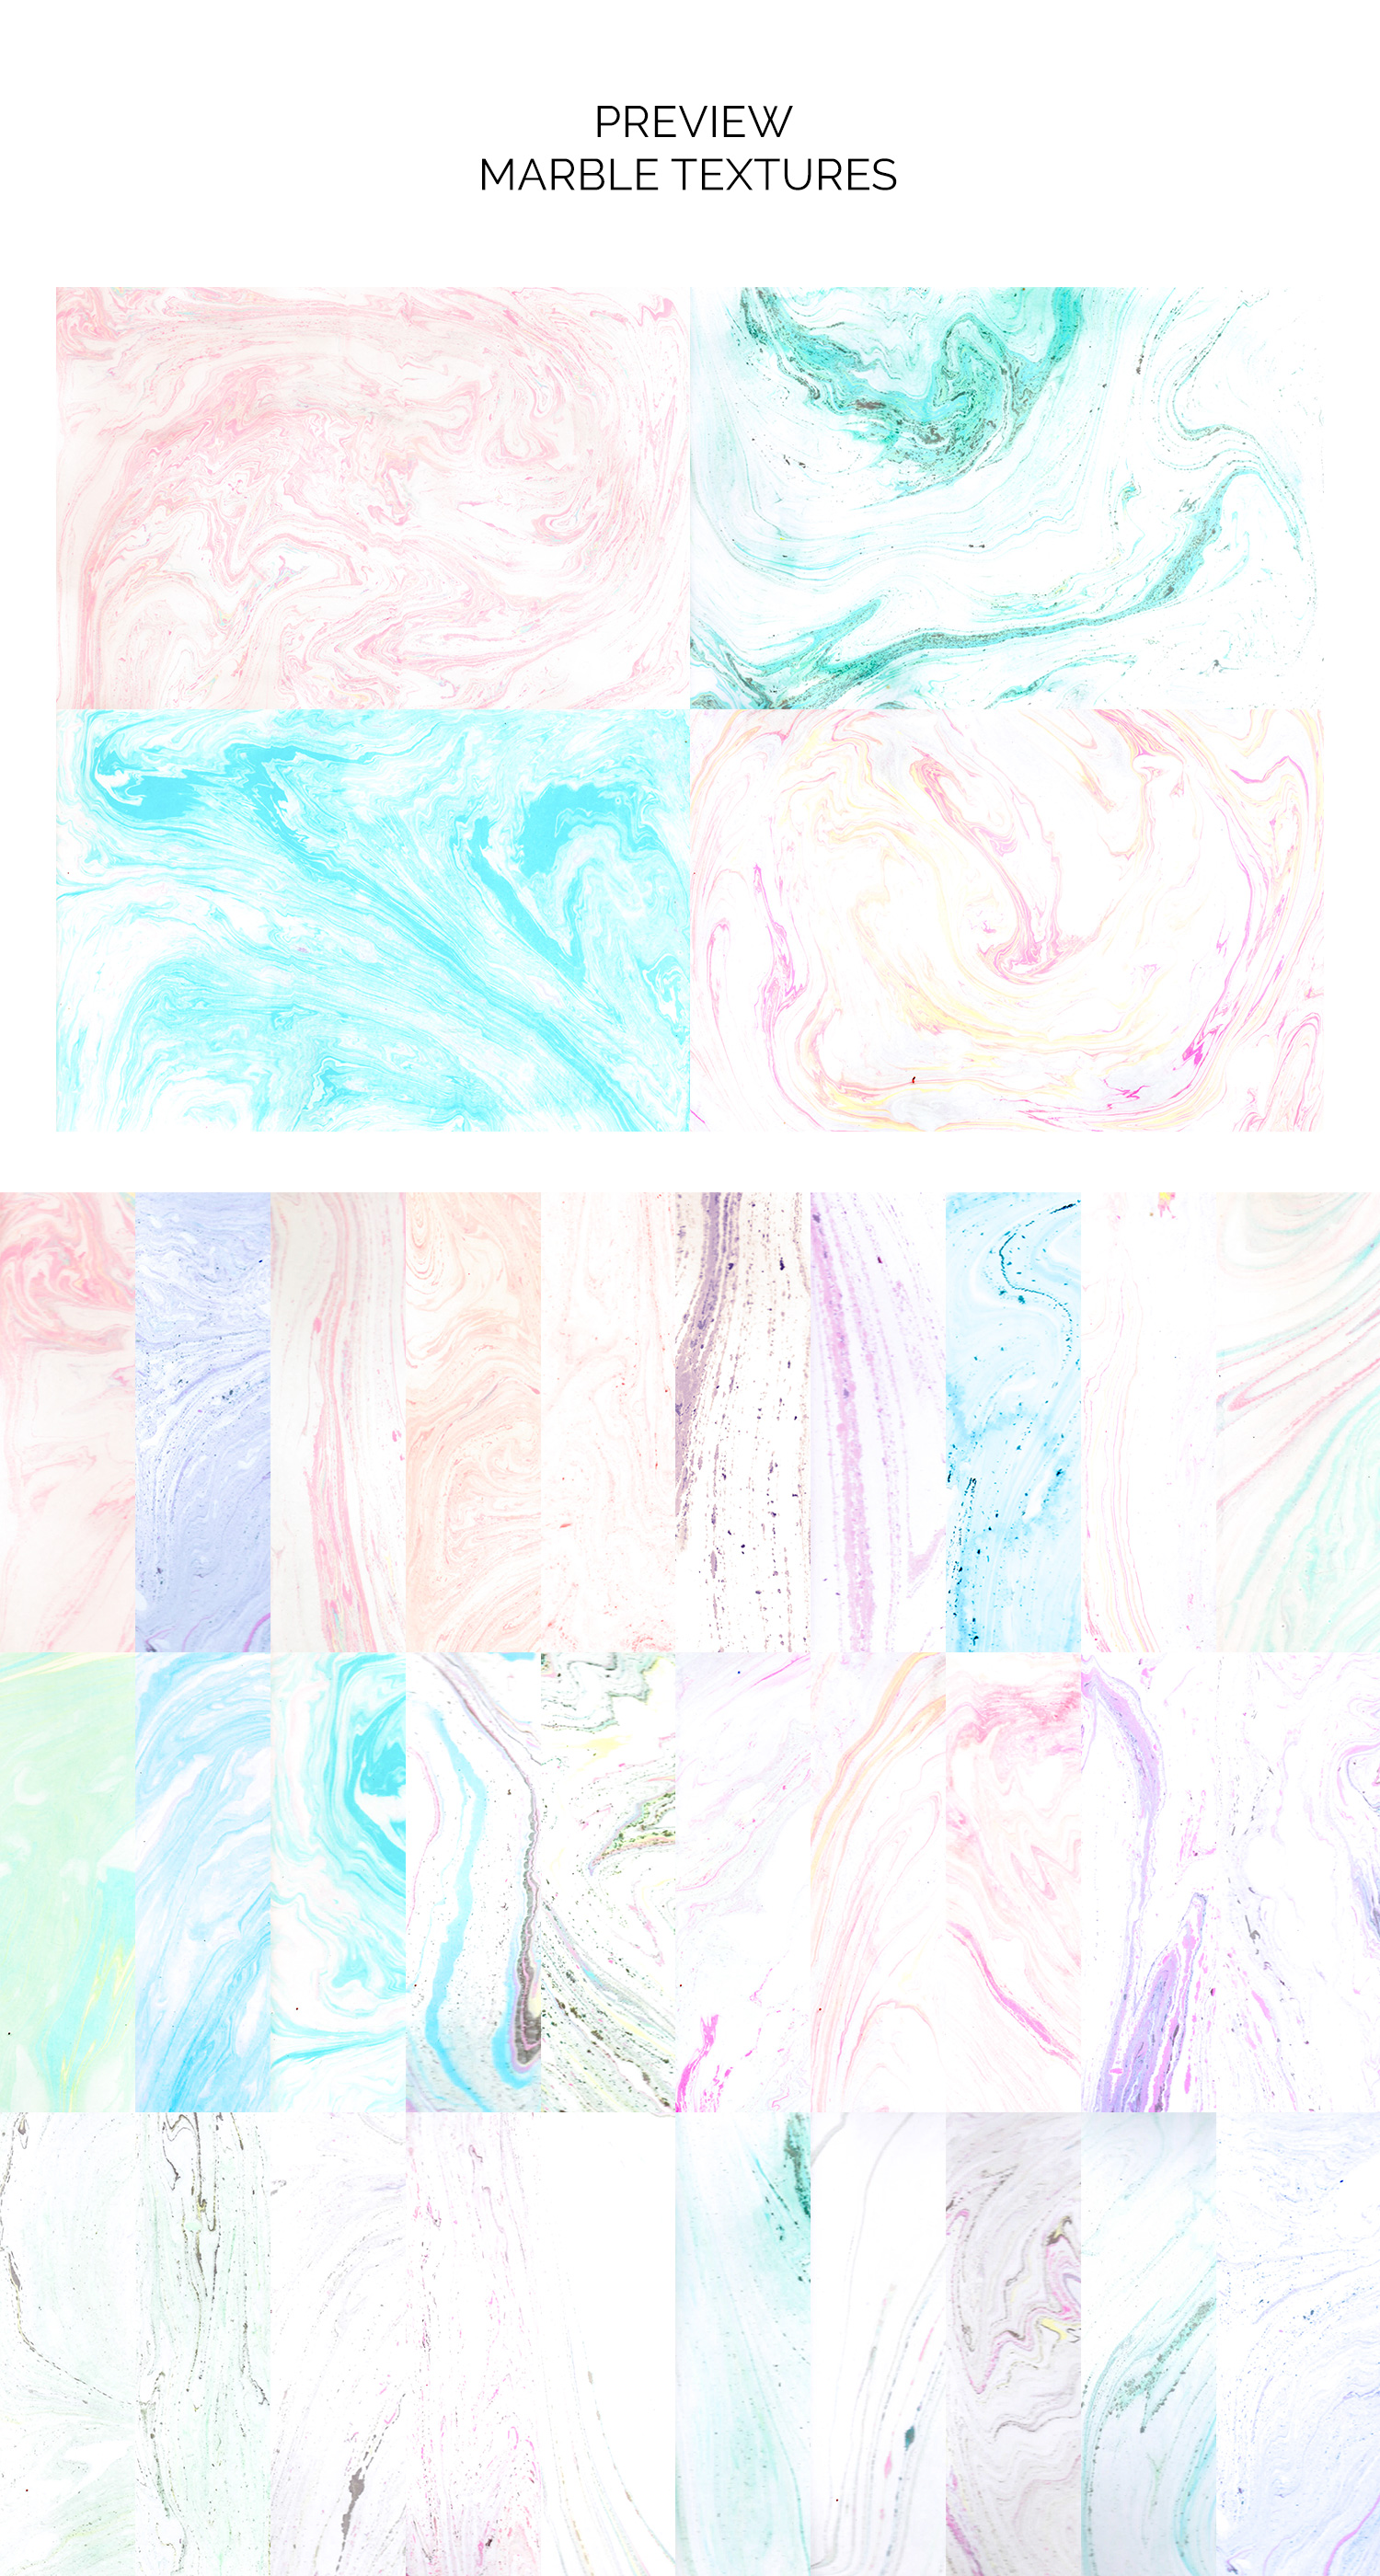 Marble Paper Textures Vol.2 example image 2